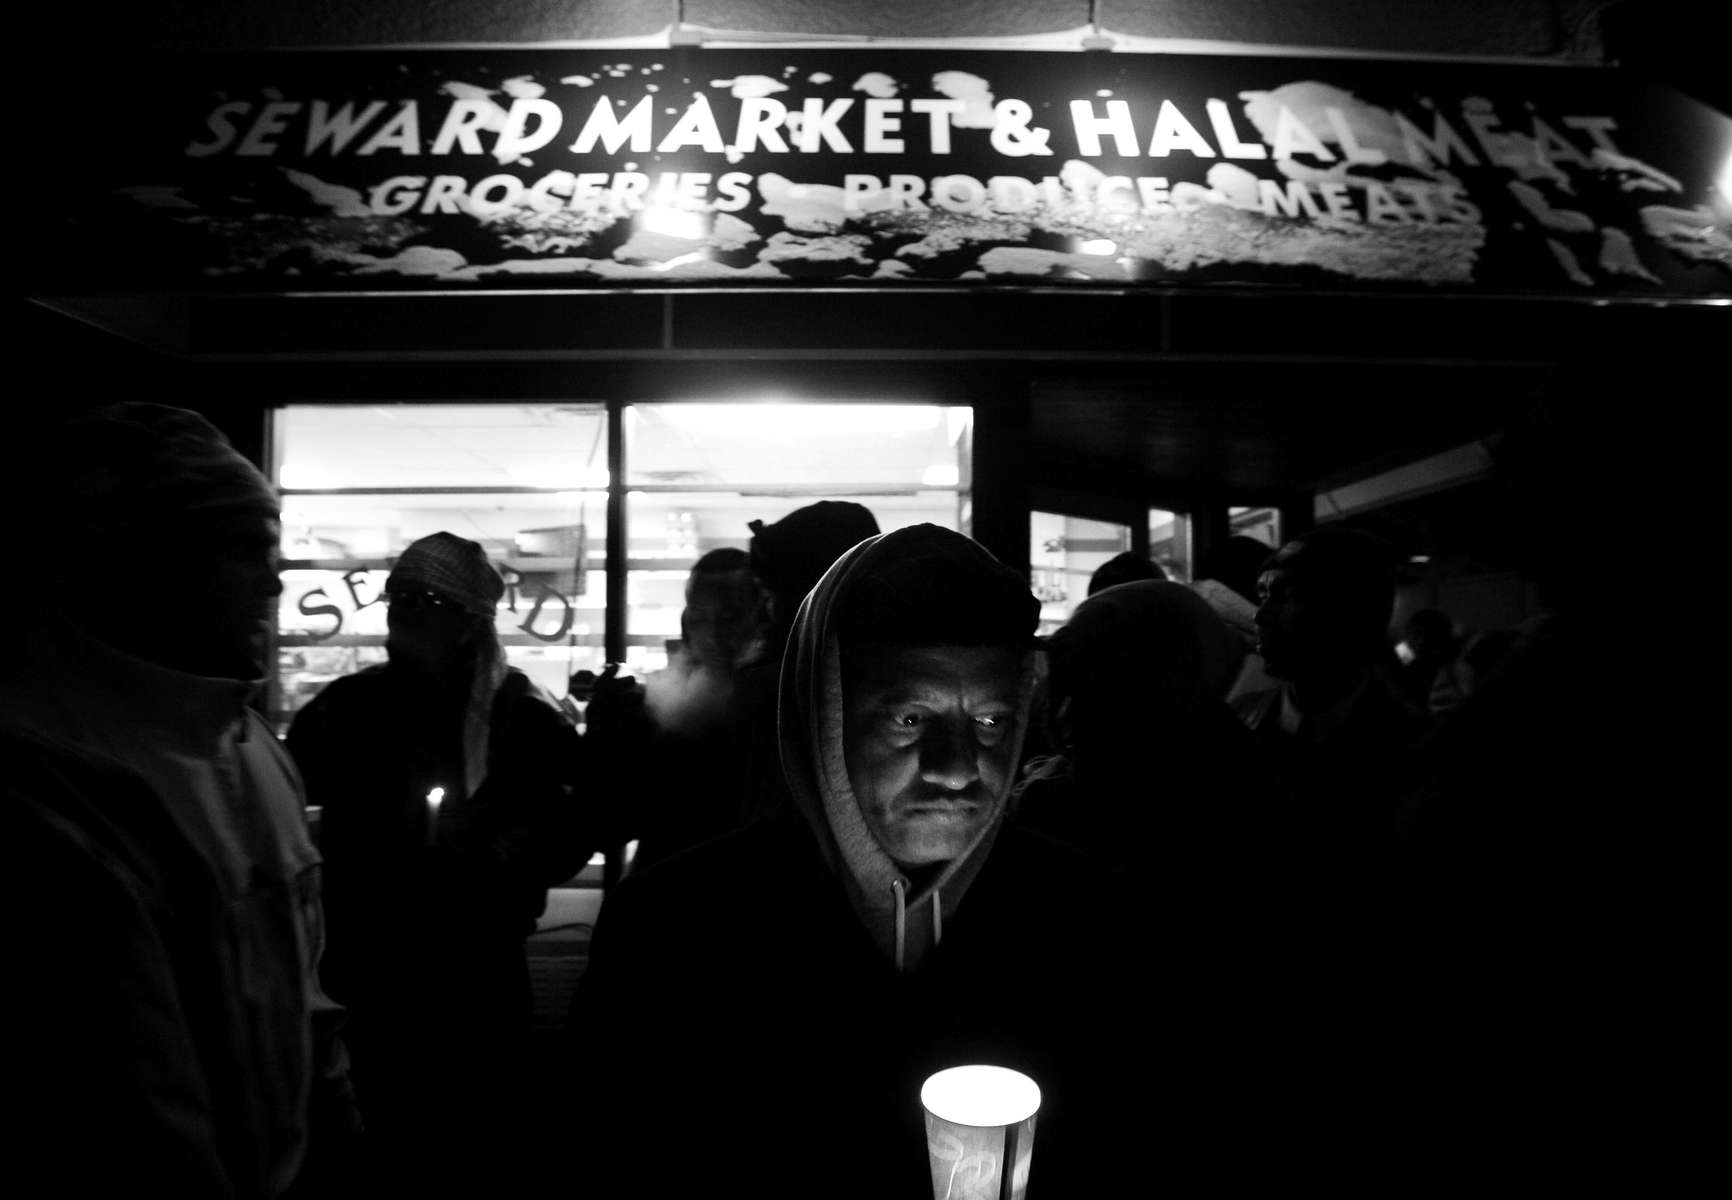 Endale Kebede of Columbia Heights lit a candle during a vigil in Minneapolis. Hundreds of people gathered at Seward Market and Halal Meats on E. Franklin Avenue in Minneapolis  to remember the three young men killed at the market.